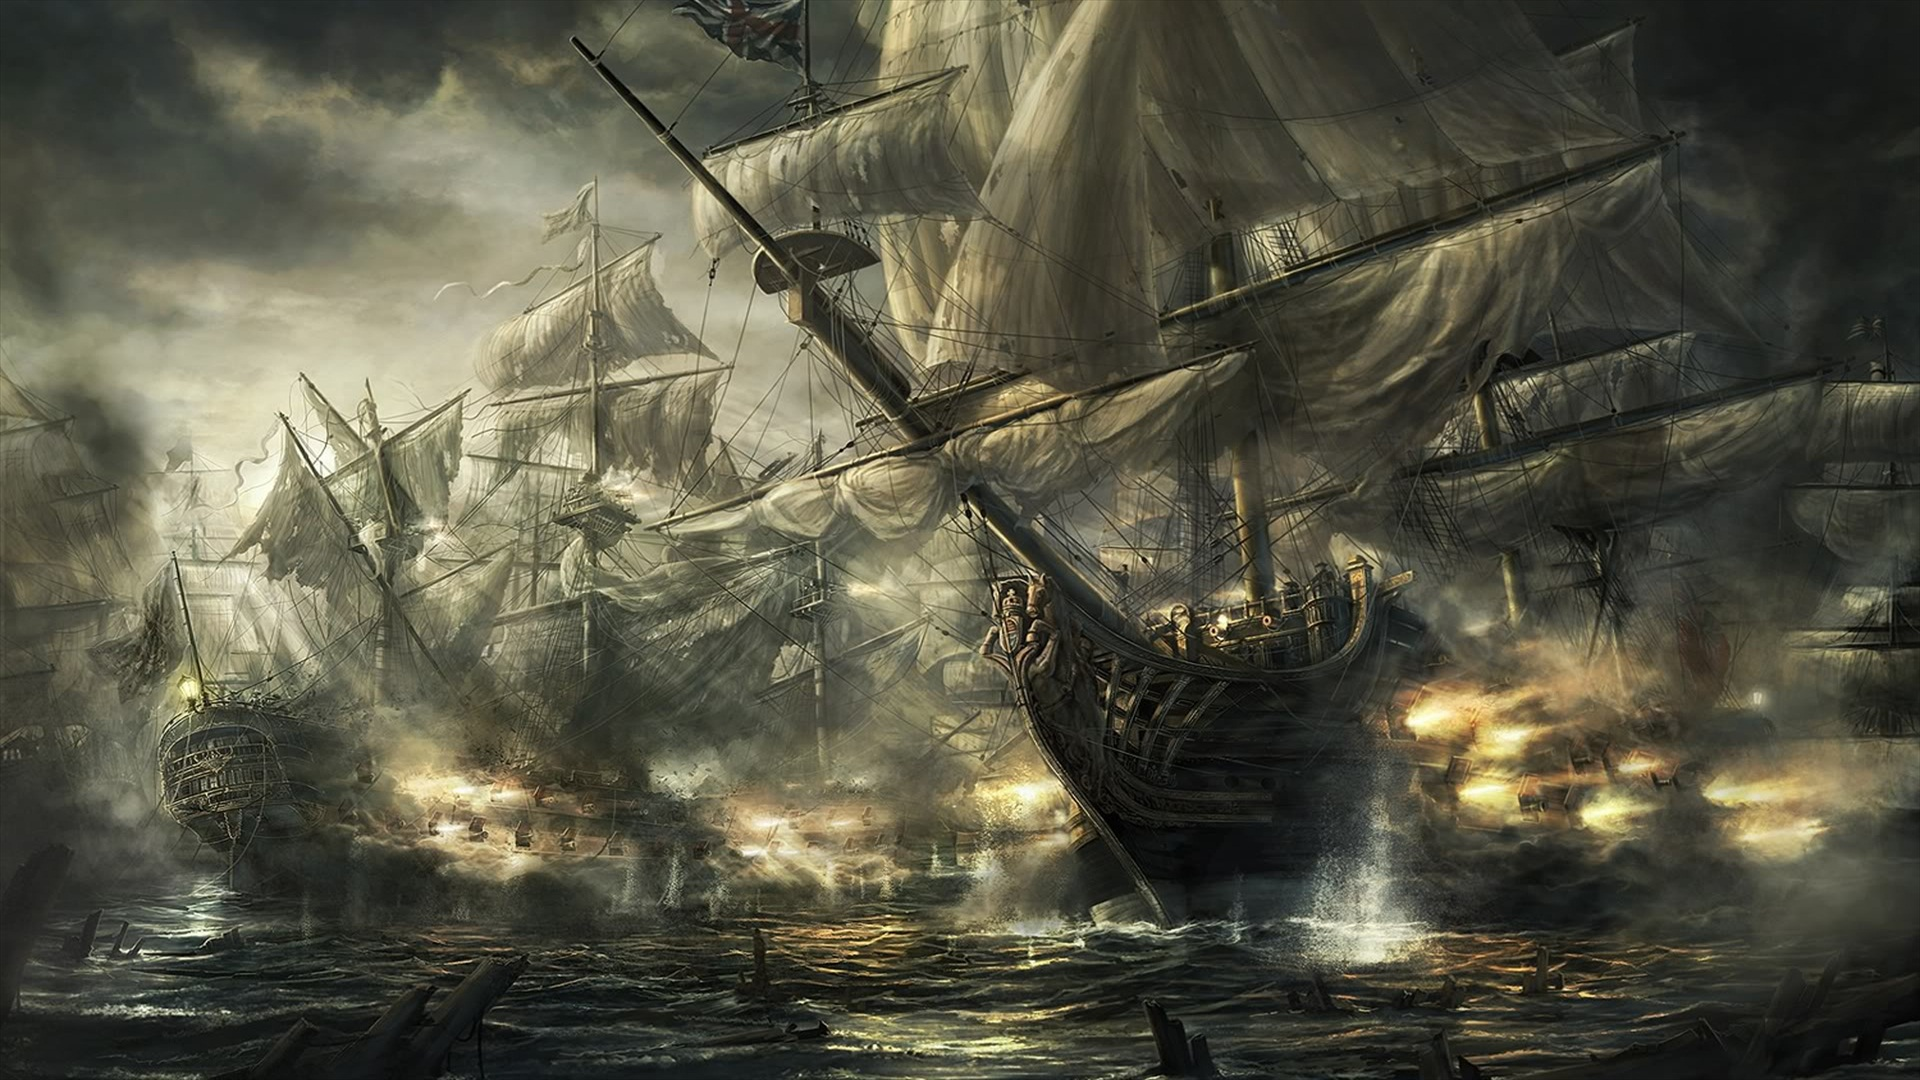 empire total war Video Game Wallpaper Background 48237 1920x1080